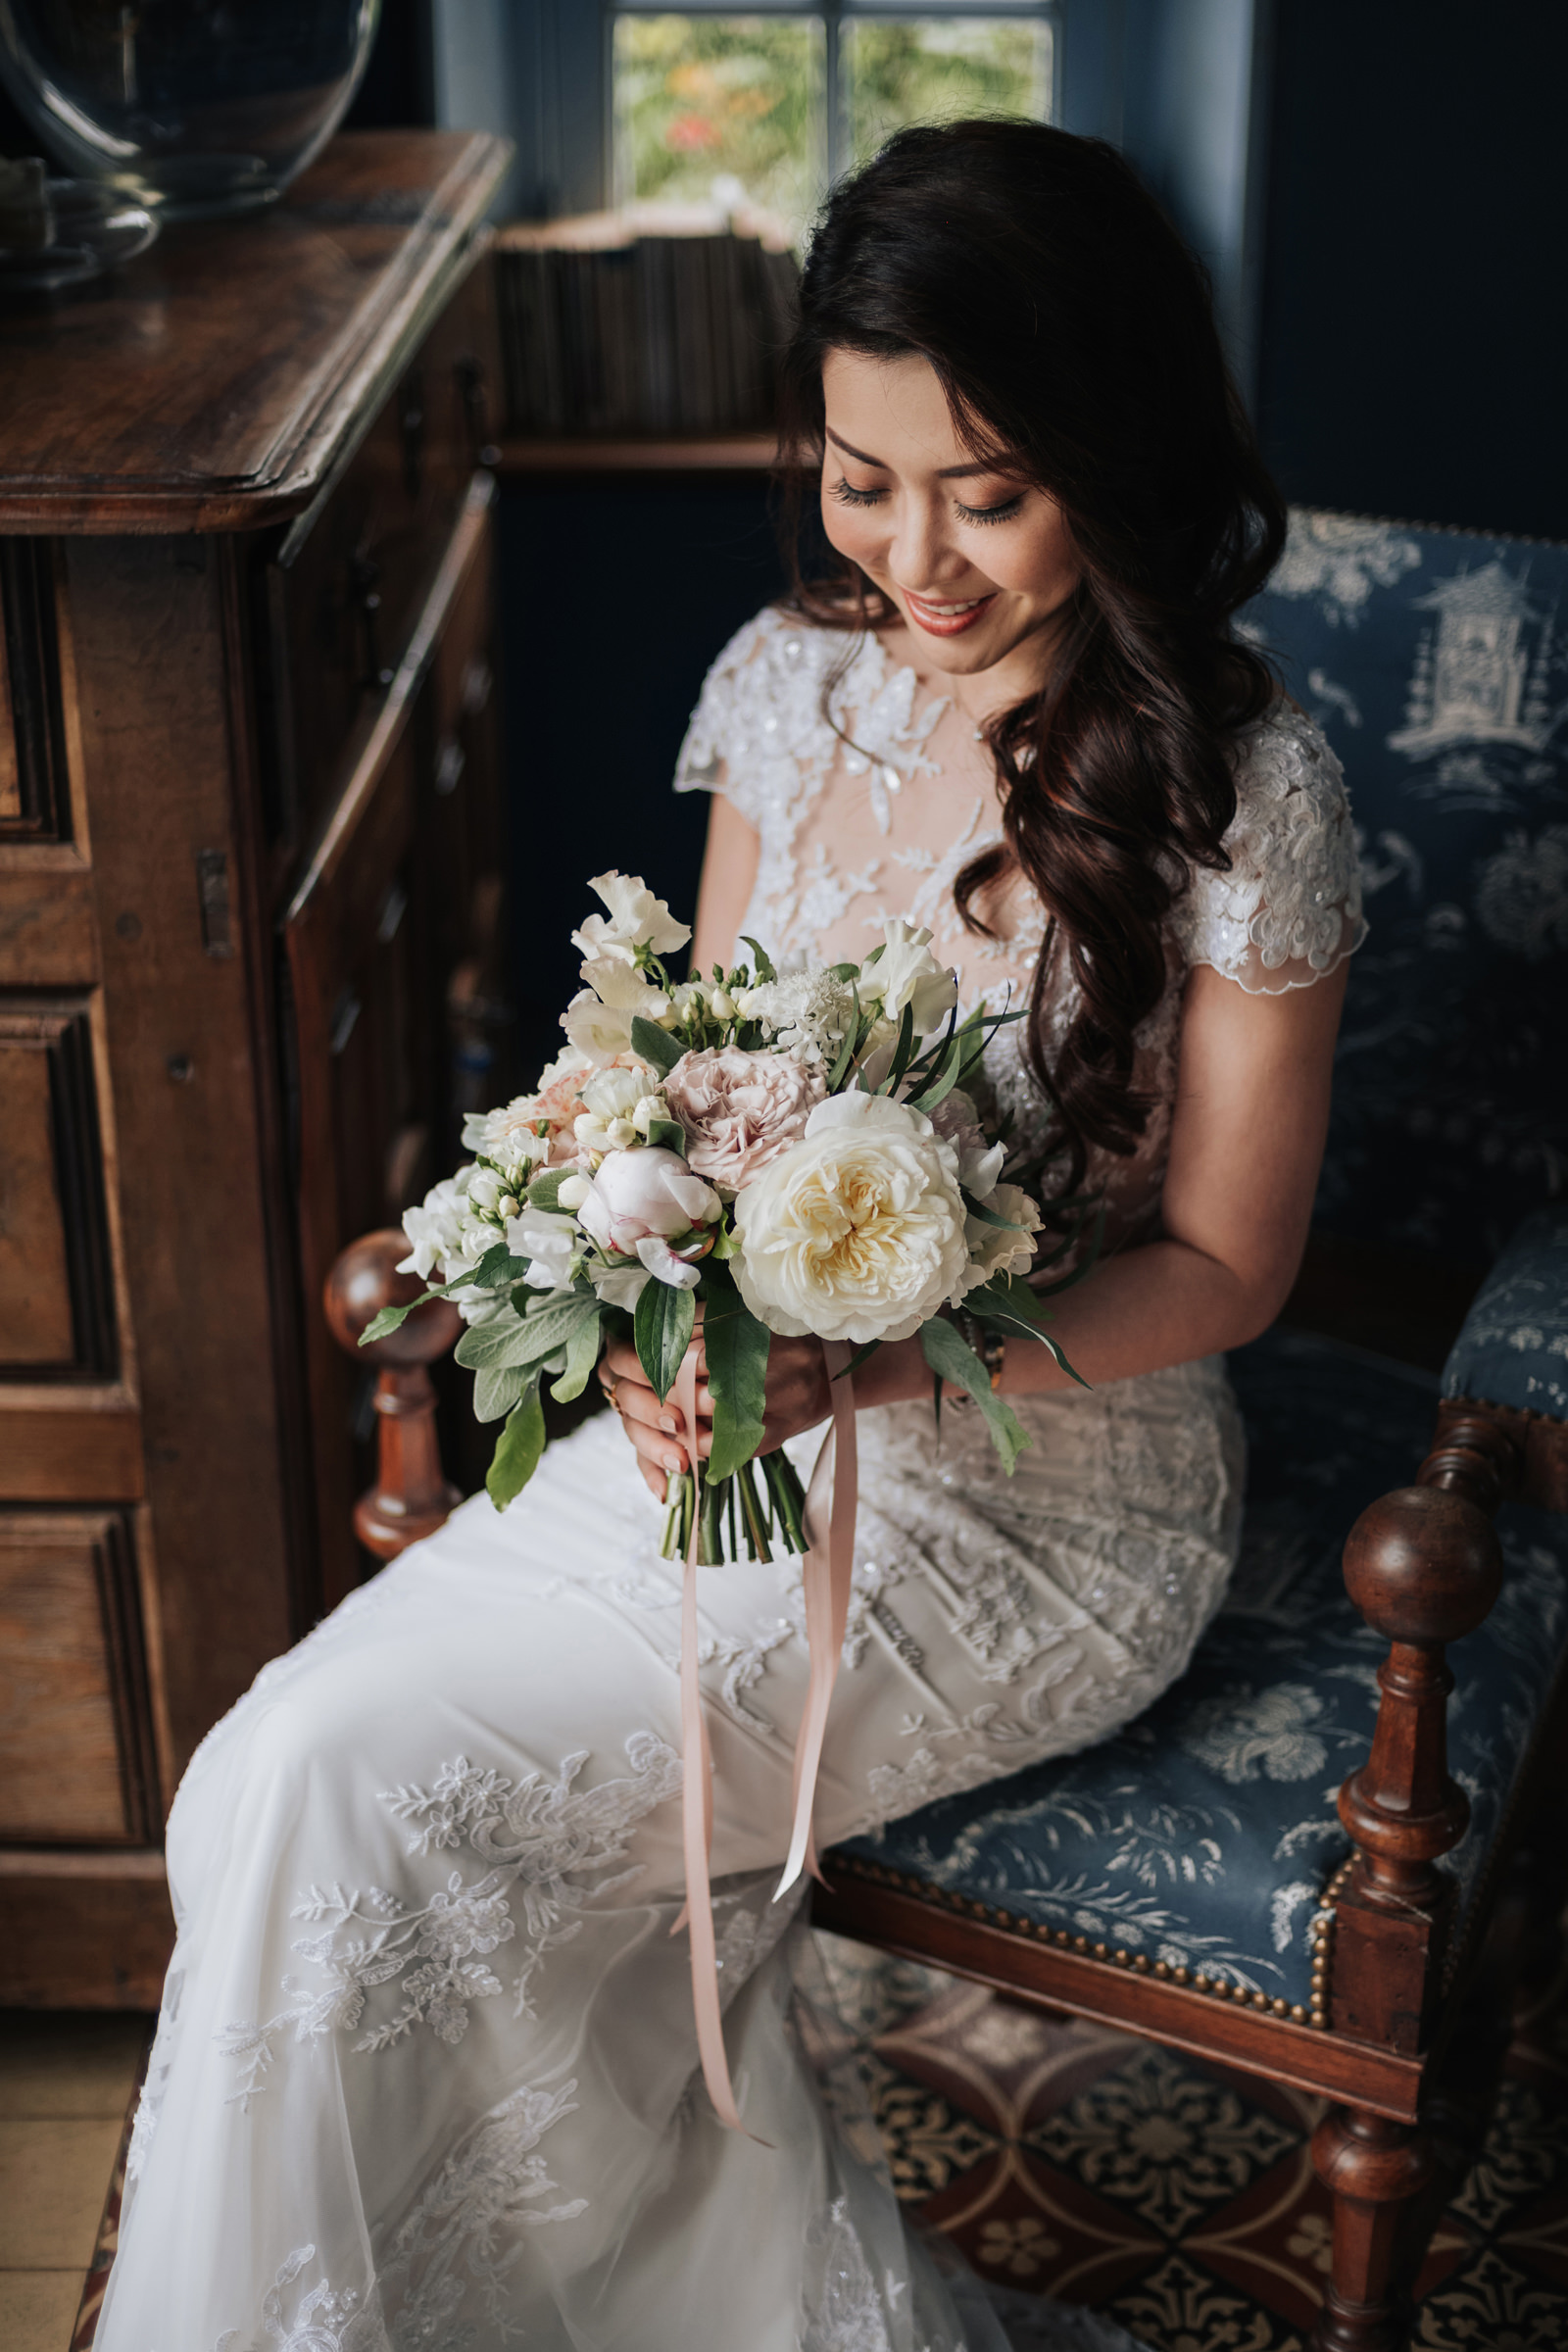 Seated bride with bouquet - Photo by MunKeat Photography Studio